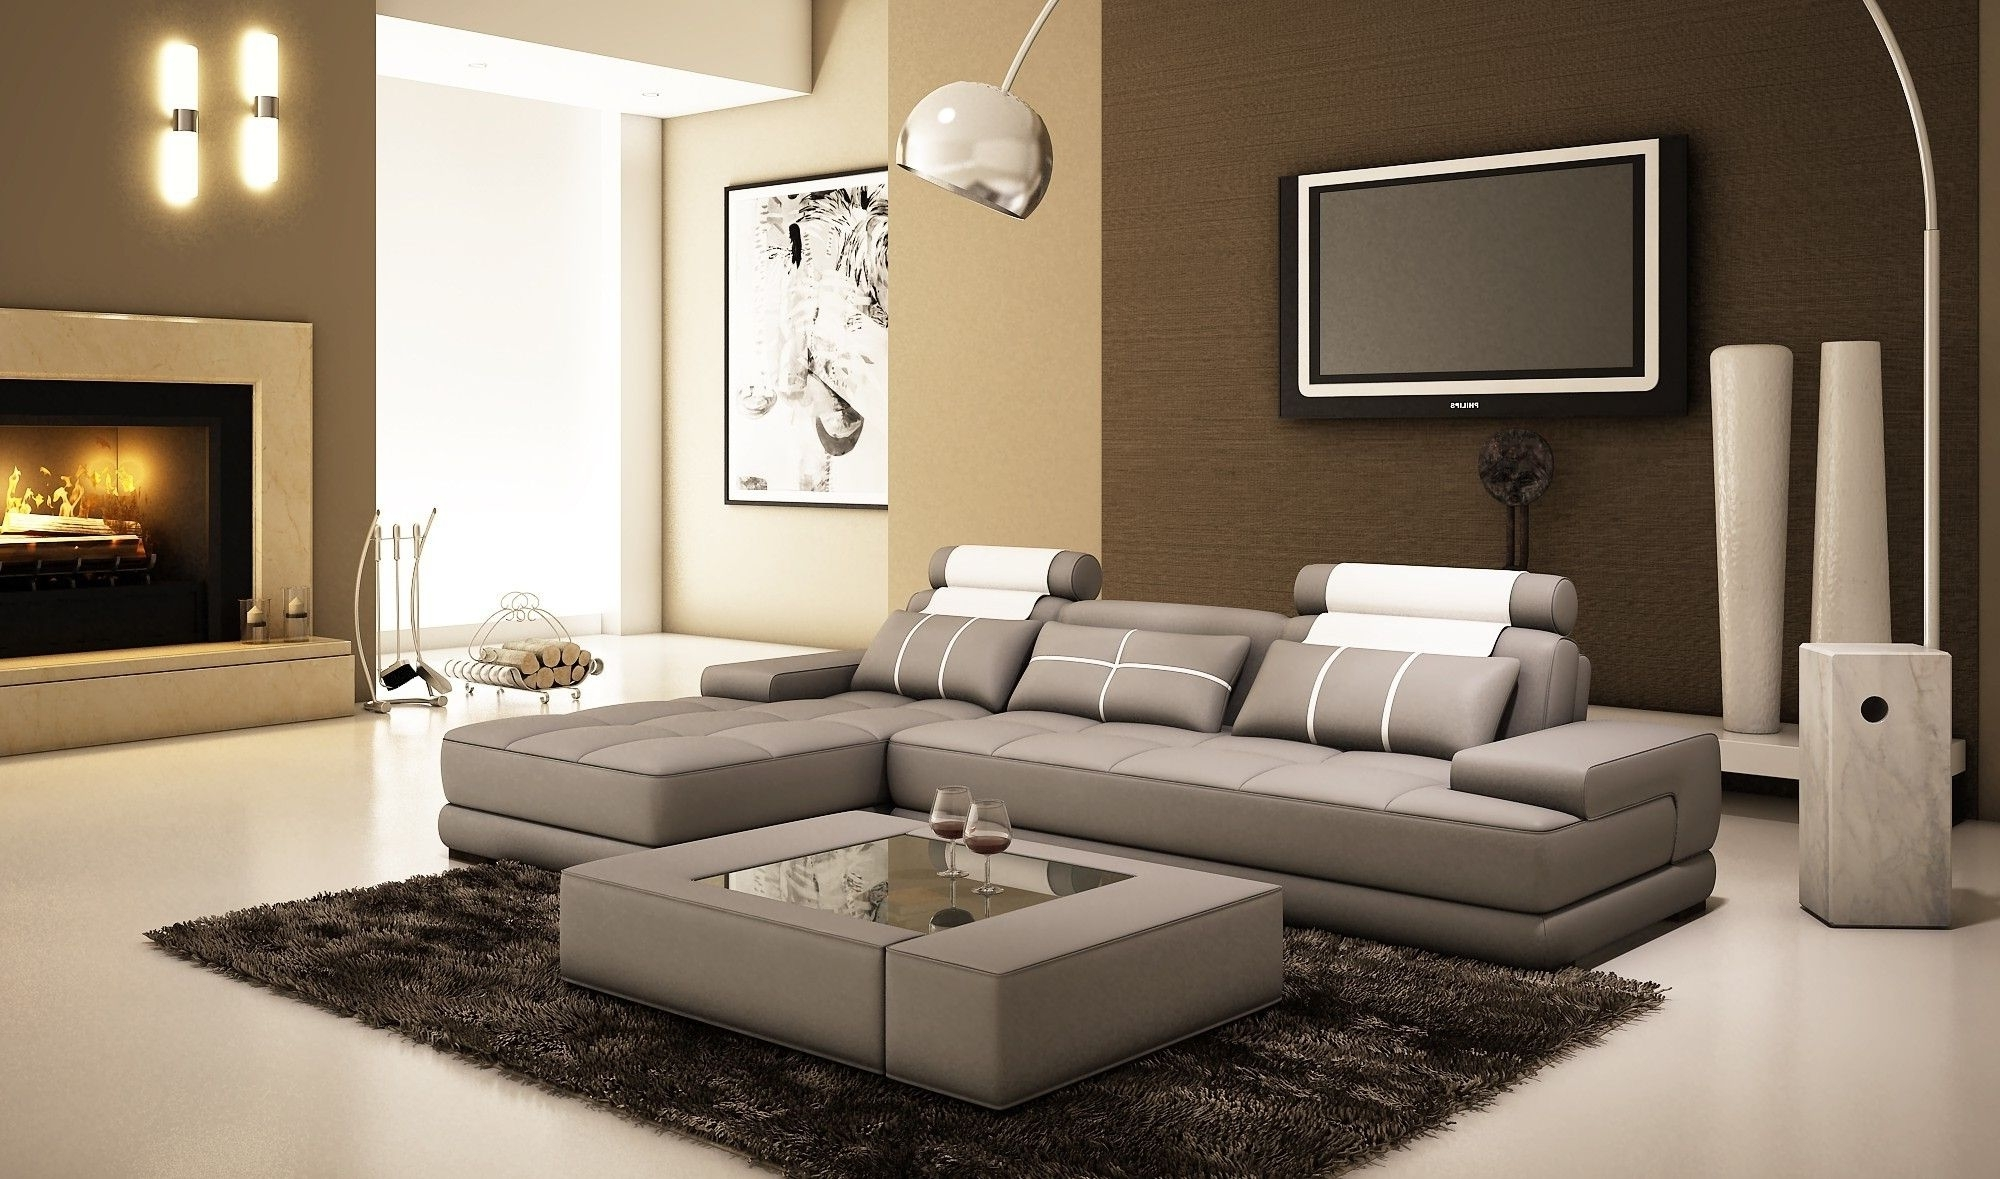 L Shaped Couches With Chaise With Regard To Most Current Gray Leather L Shaped Sectional Couch With Chaise Lounge And (View 7 of 15)